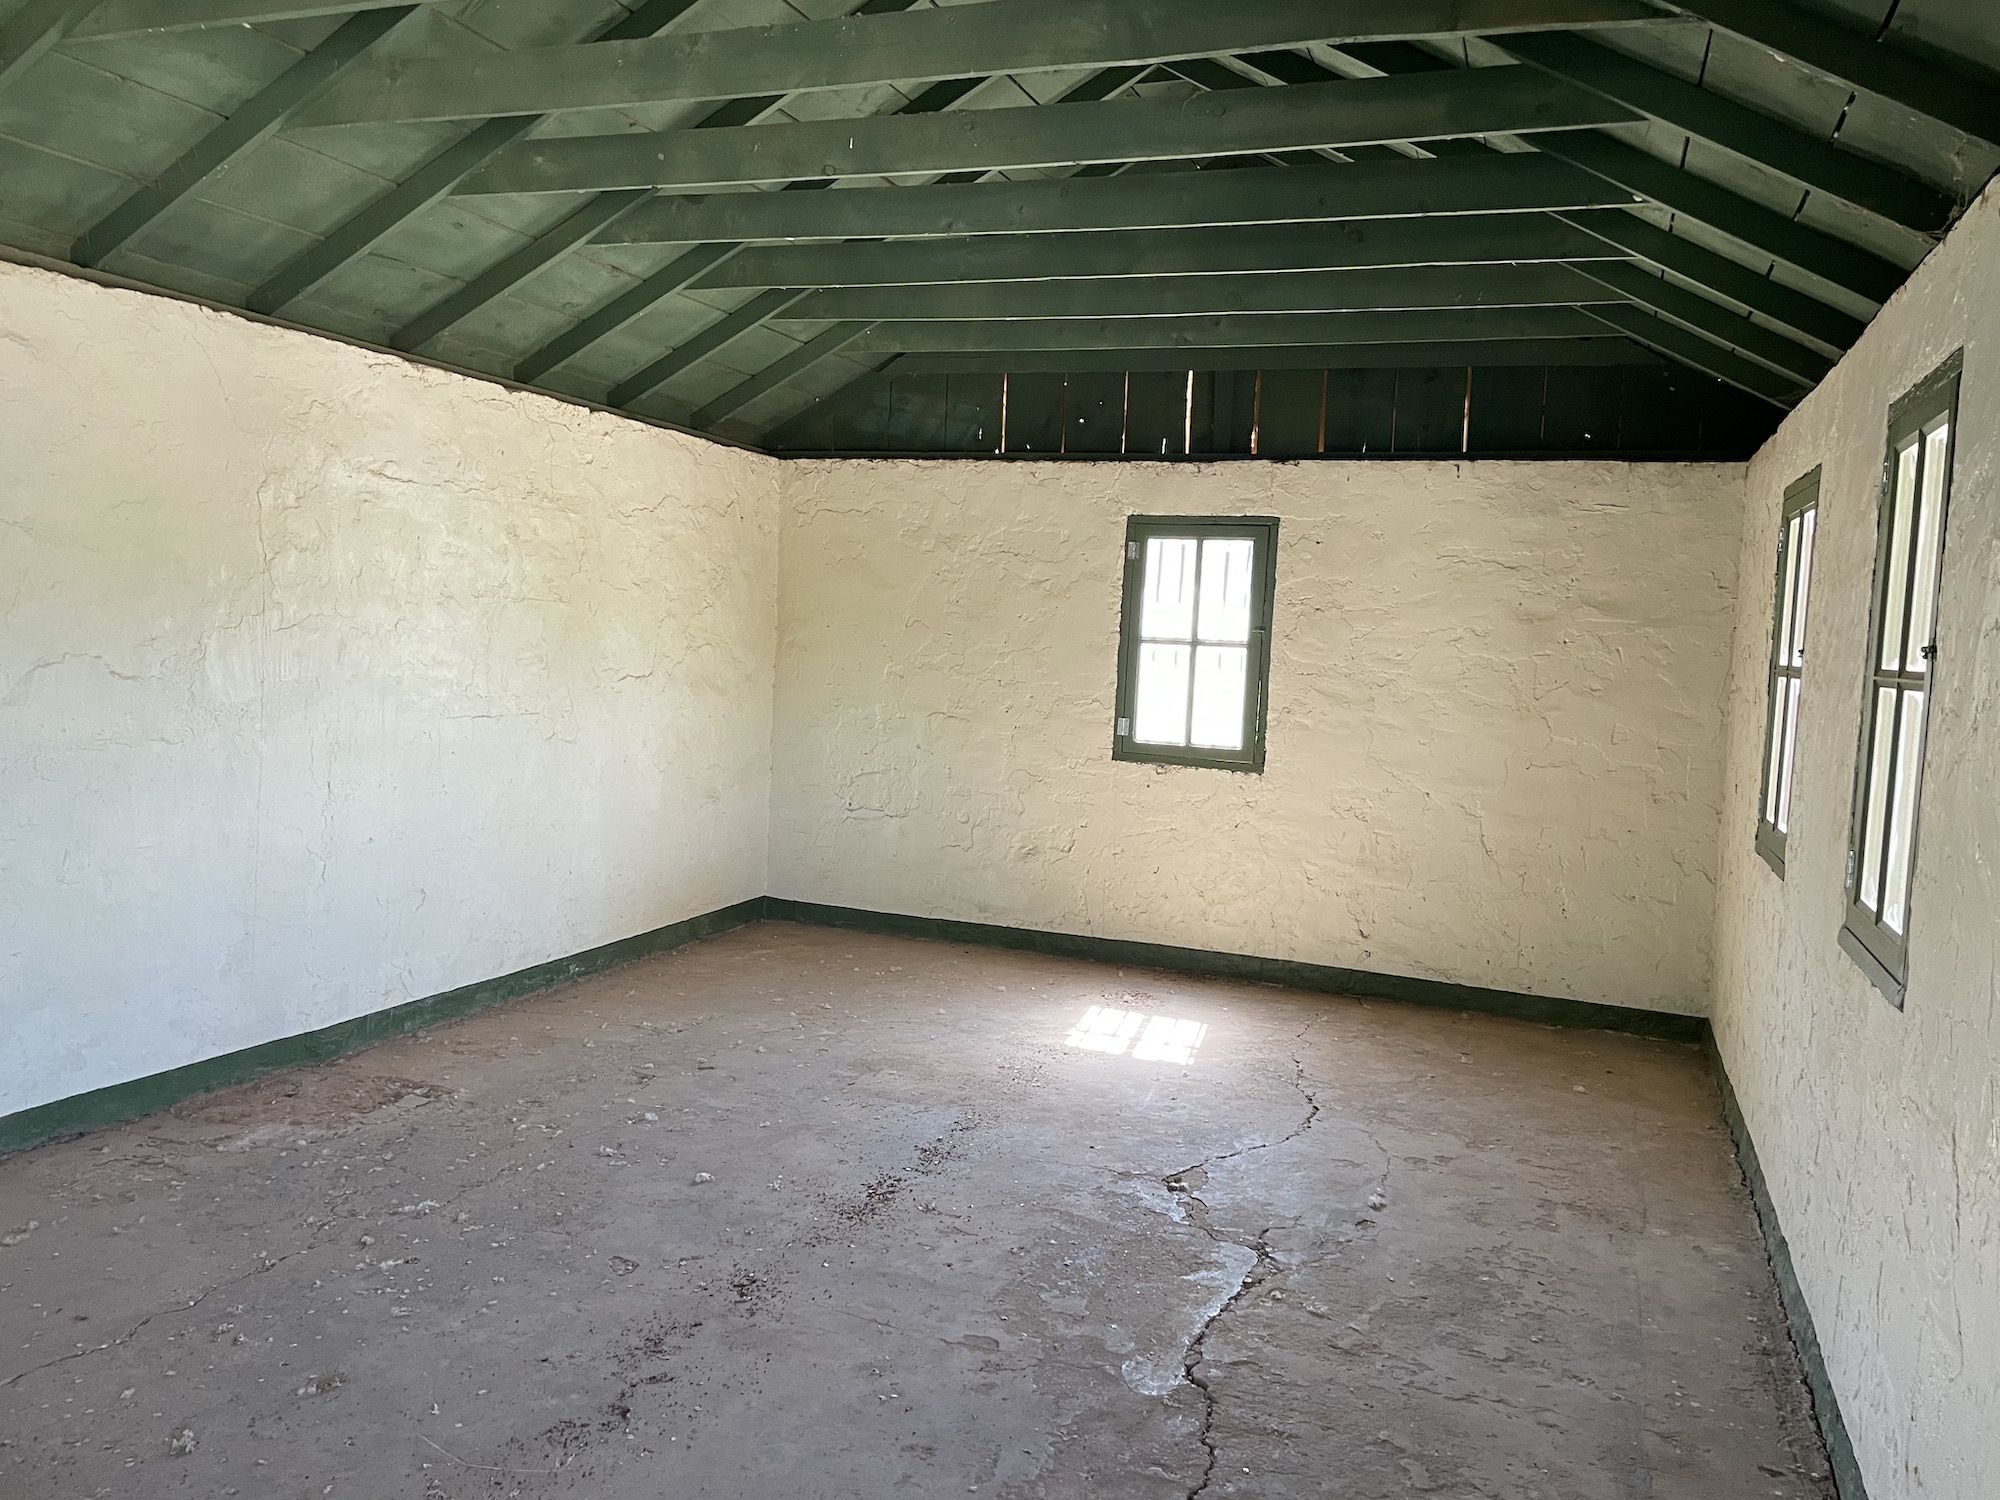 Inside one of the Buildings at the Civilian Conservation Corp Camp in Leeds